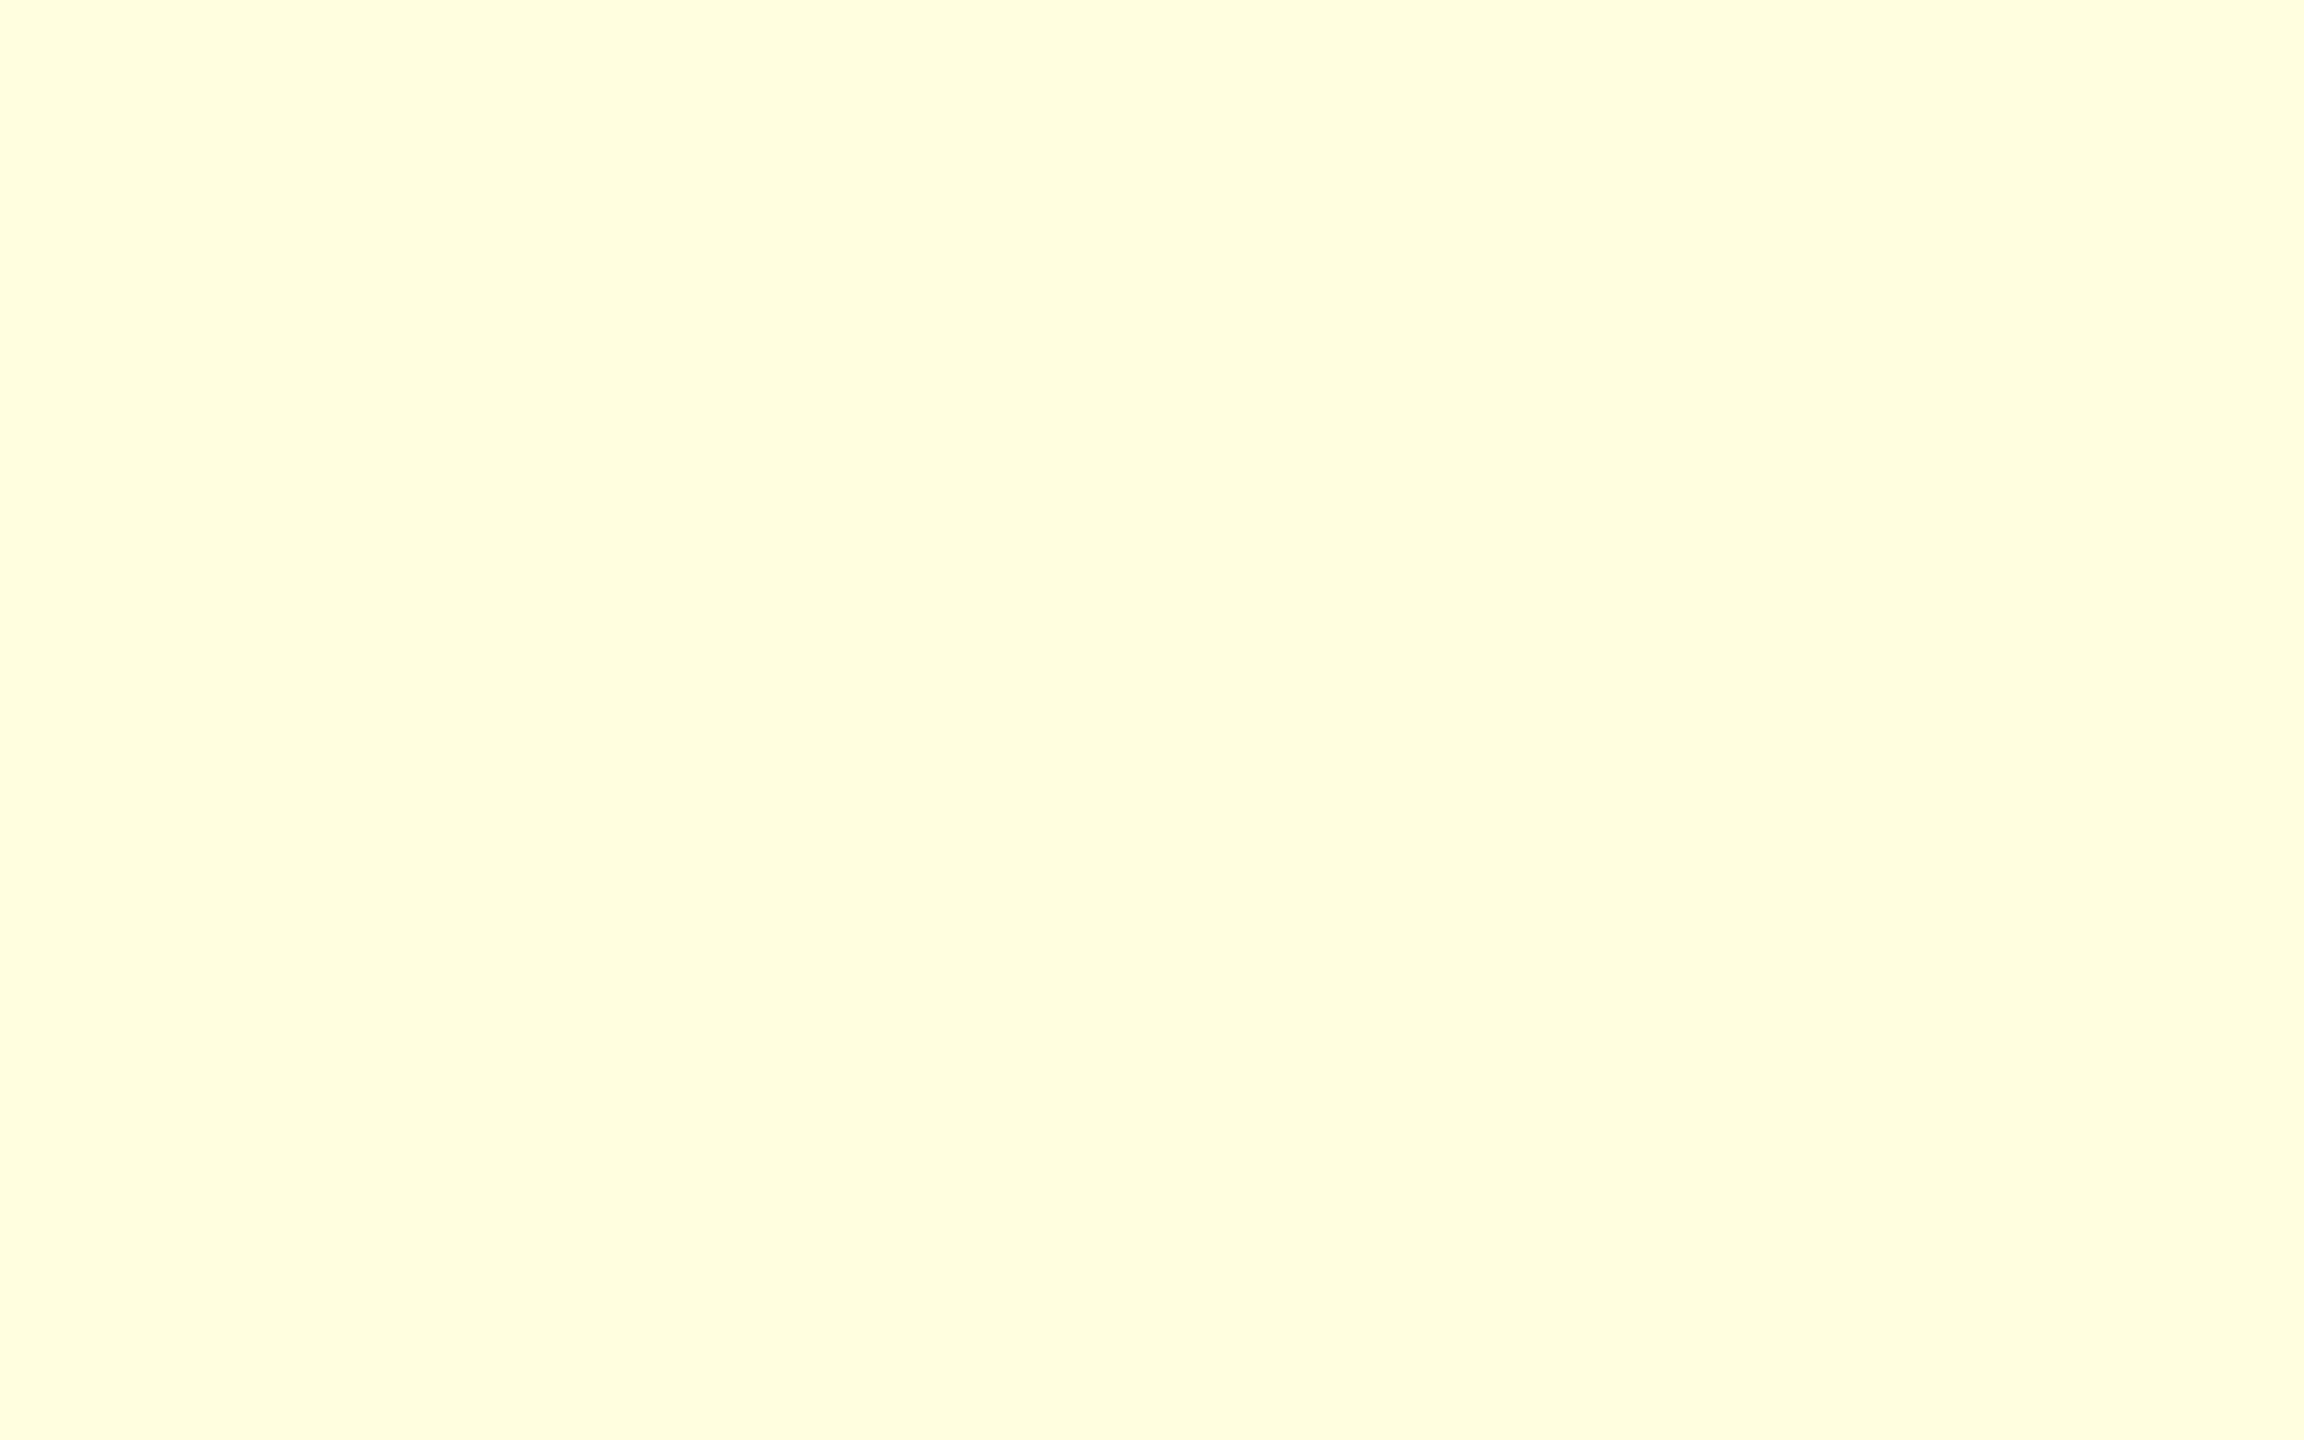 2304x1440 Light Yellow Solid Color Background